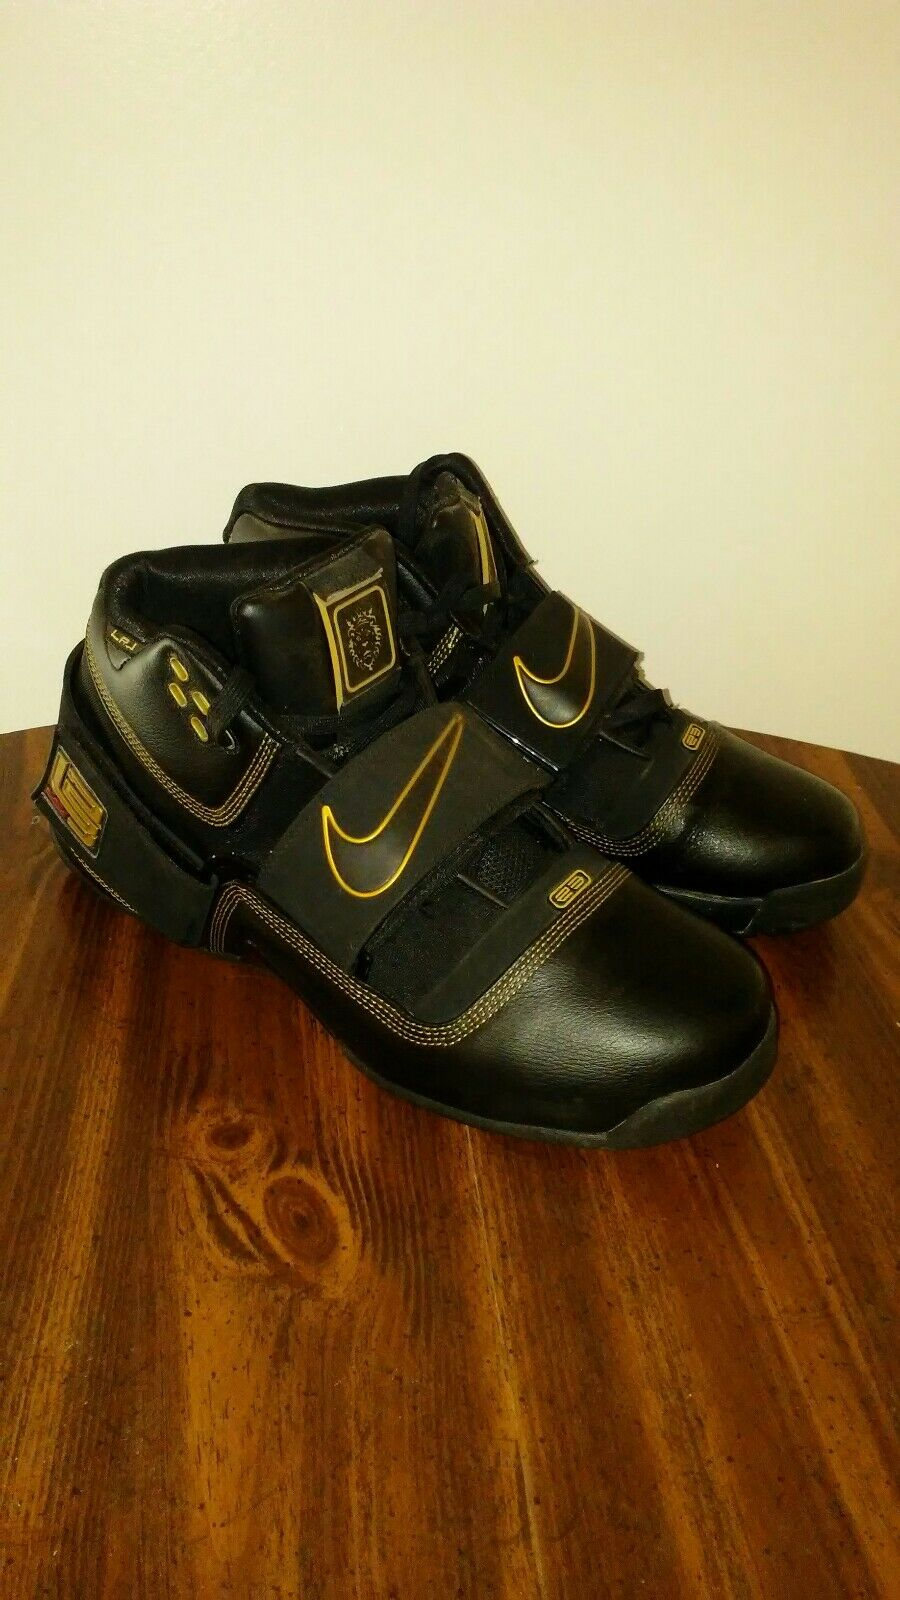 Nike Air Zoom Soldier Original LeBron James Collector Price reduction Cheap and beautiful fashion